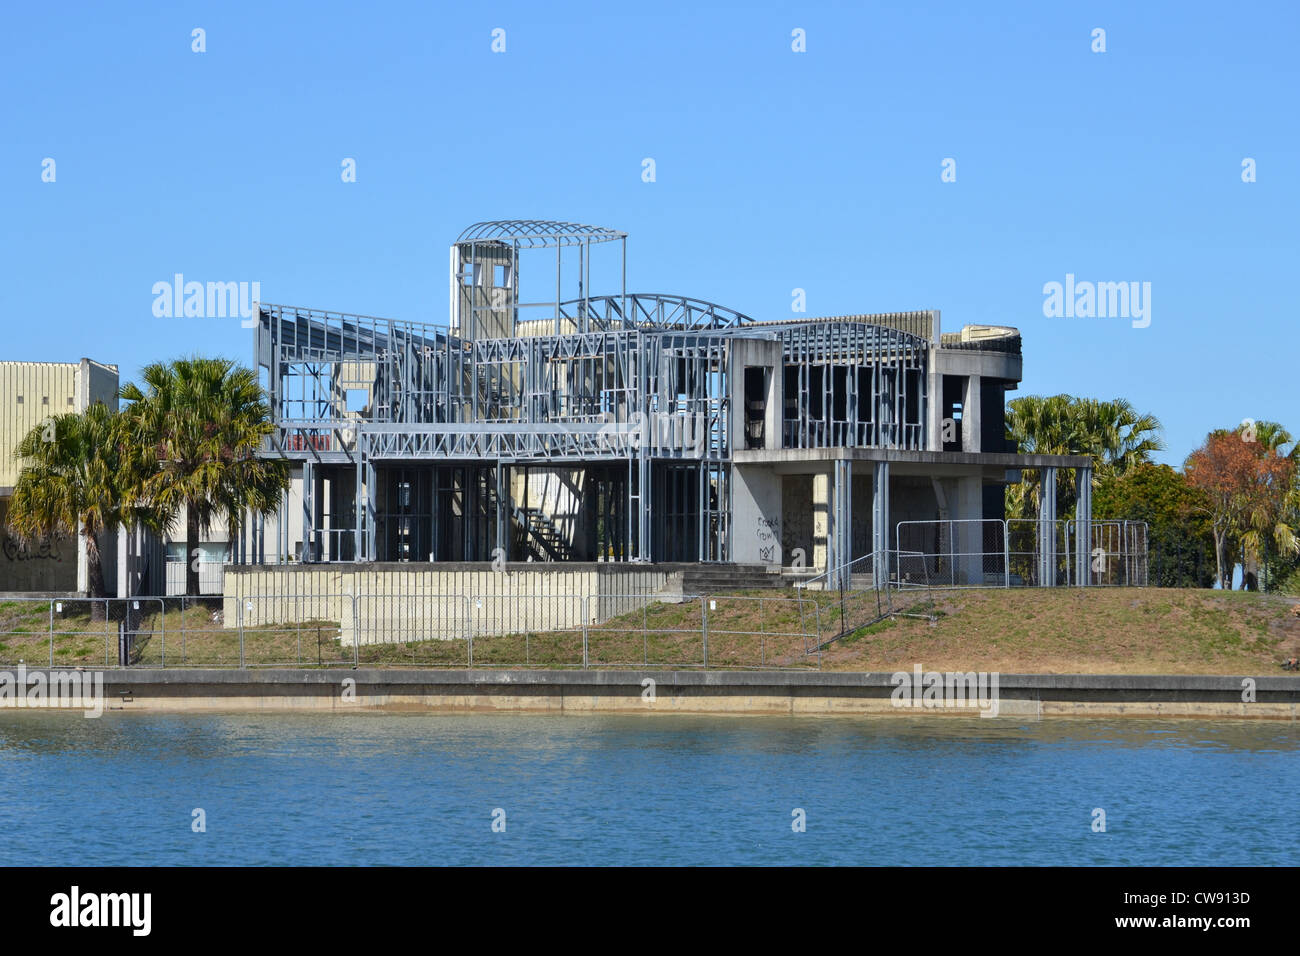 Steel Frame Home Stock Photos & Steel Frame Home Stock Images - Alamy